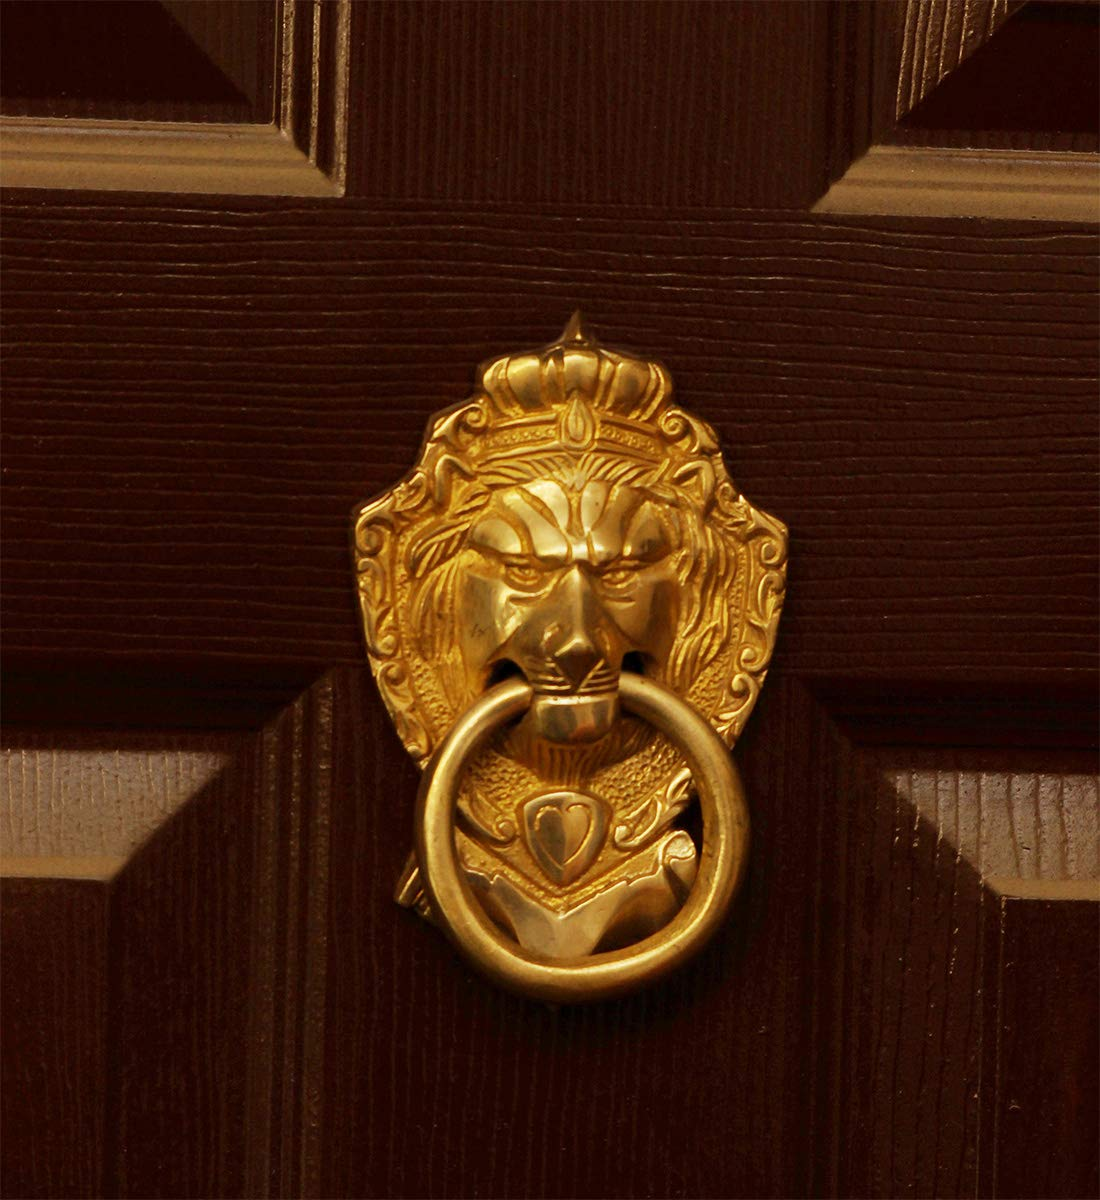 Today Sale on Crafkart King Lion Face Design Brass Door Knocker for Front Door | Vintage Style Pull Door Ring Handleset | Polished Brass by Crafkart (Image #3)